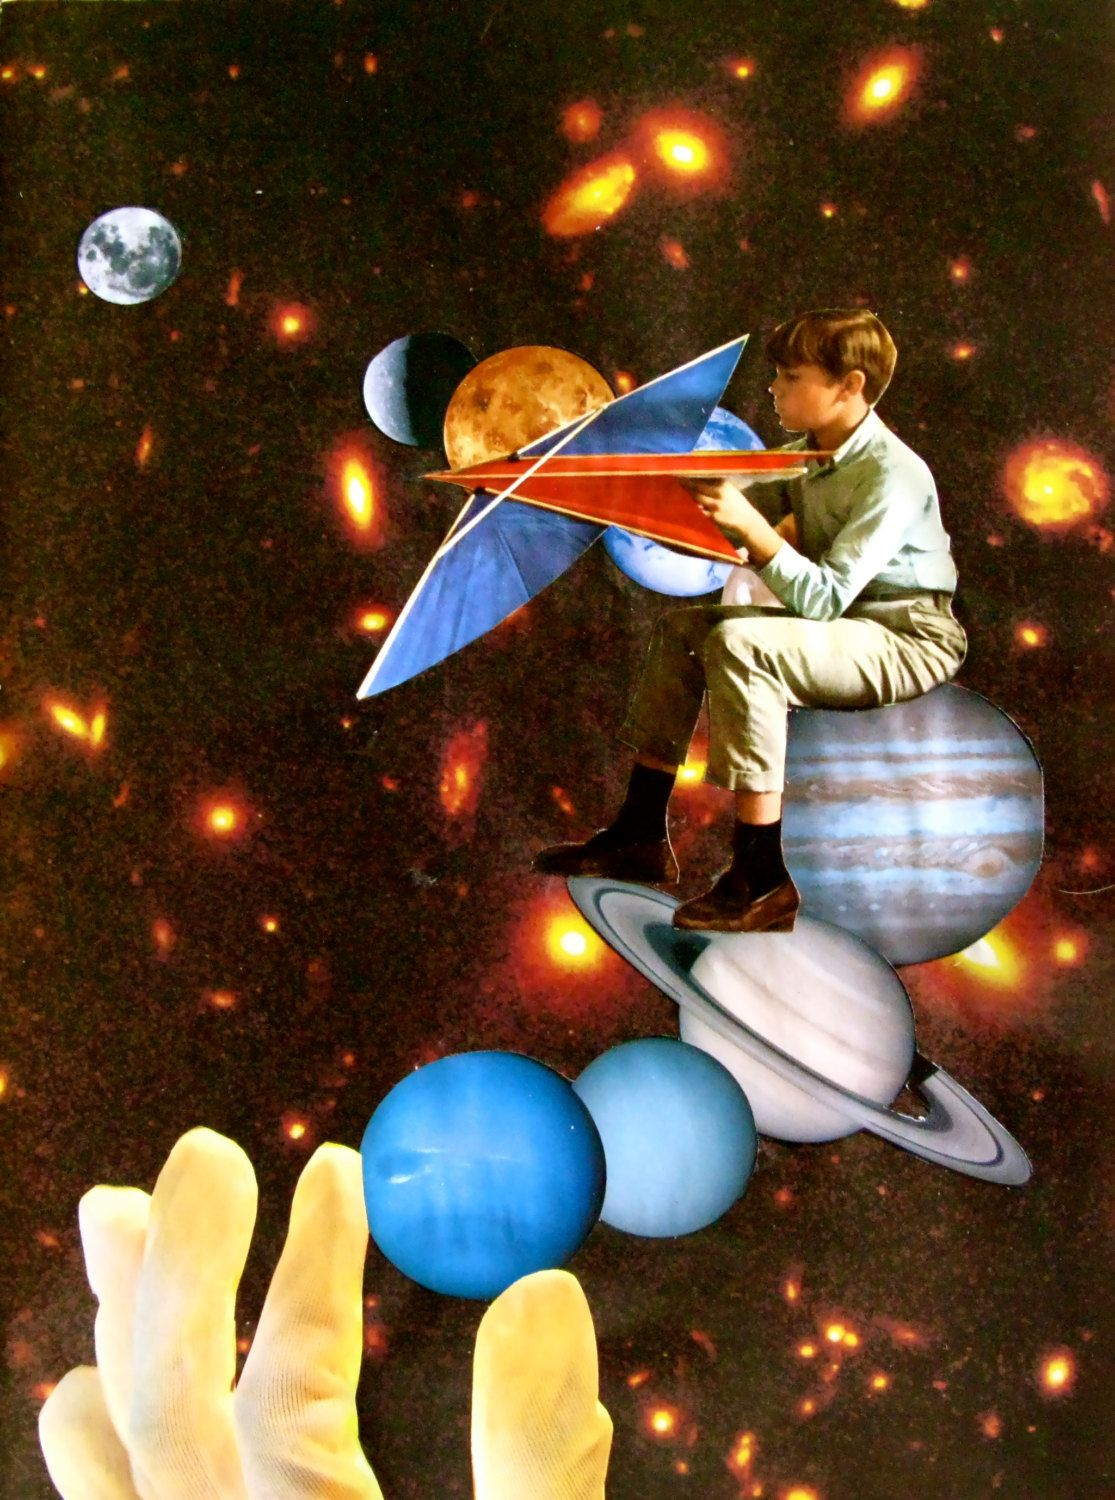 Kite Flying Weather - Original COLLAGE Montage SURREAL Collage-a-dada SPACE Universe - Cosmic Art by collageadada on Etsy